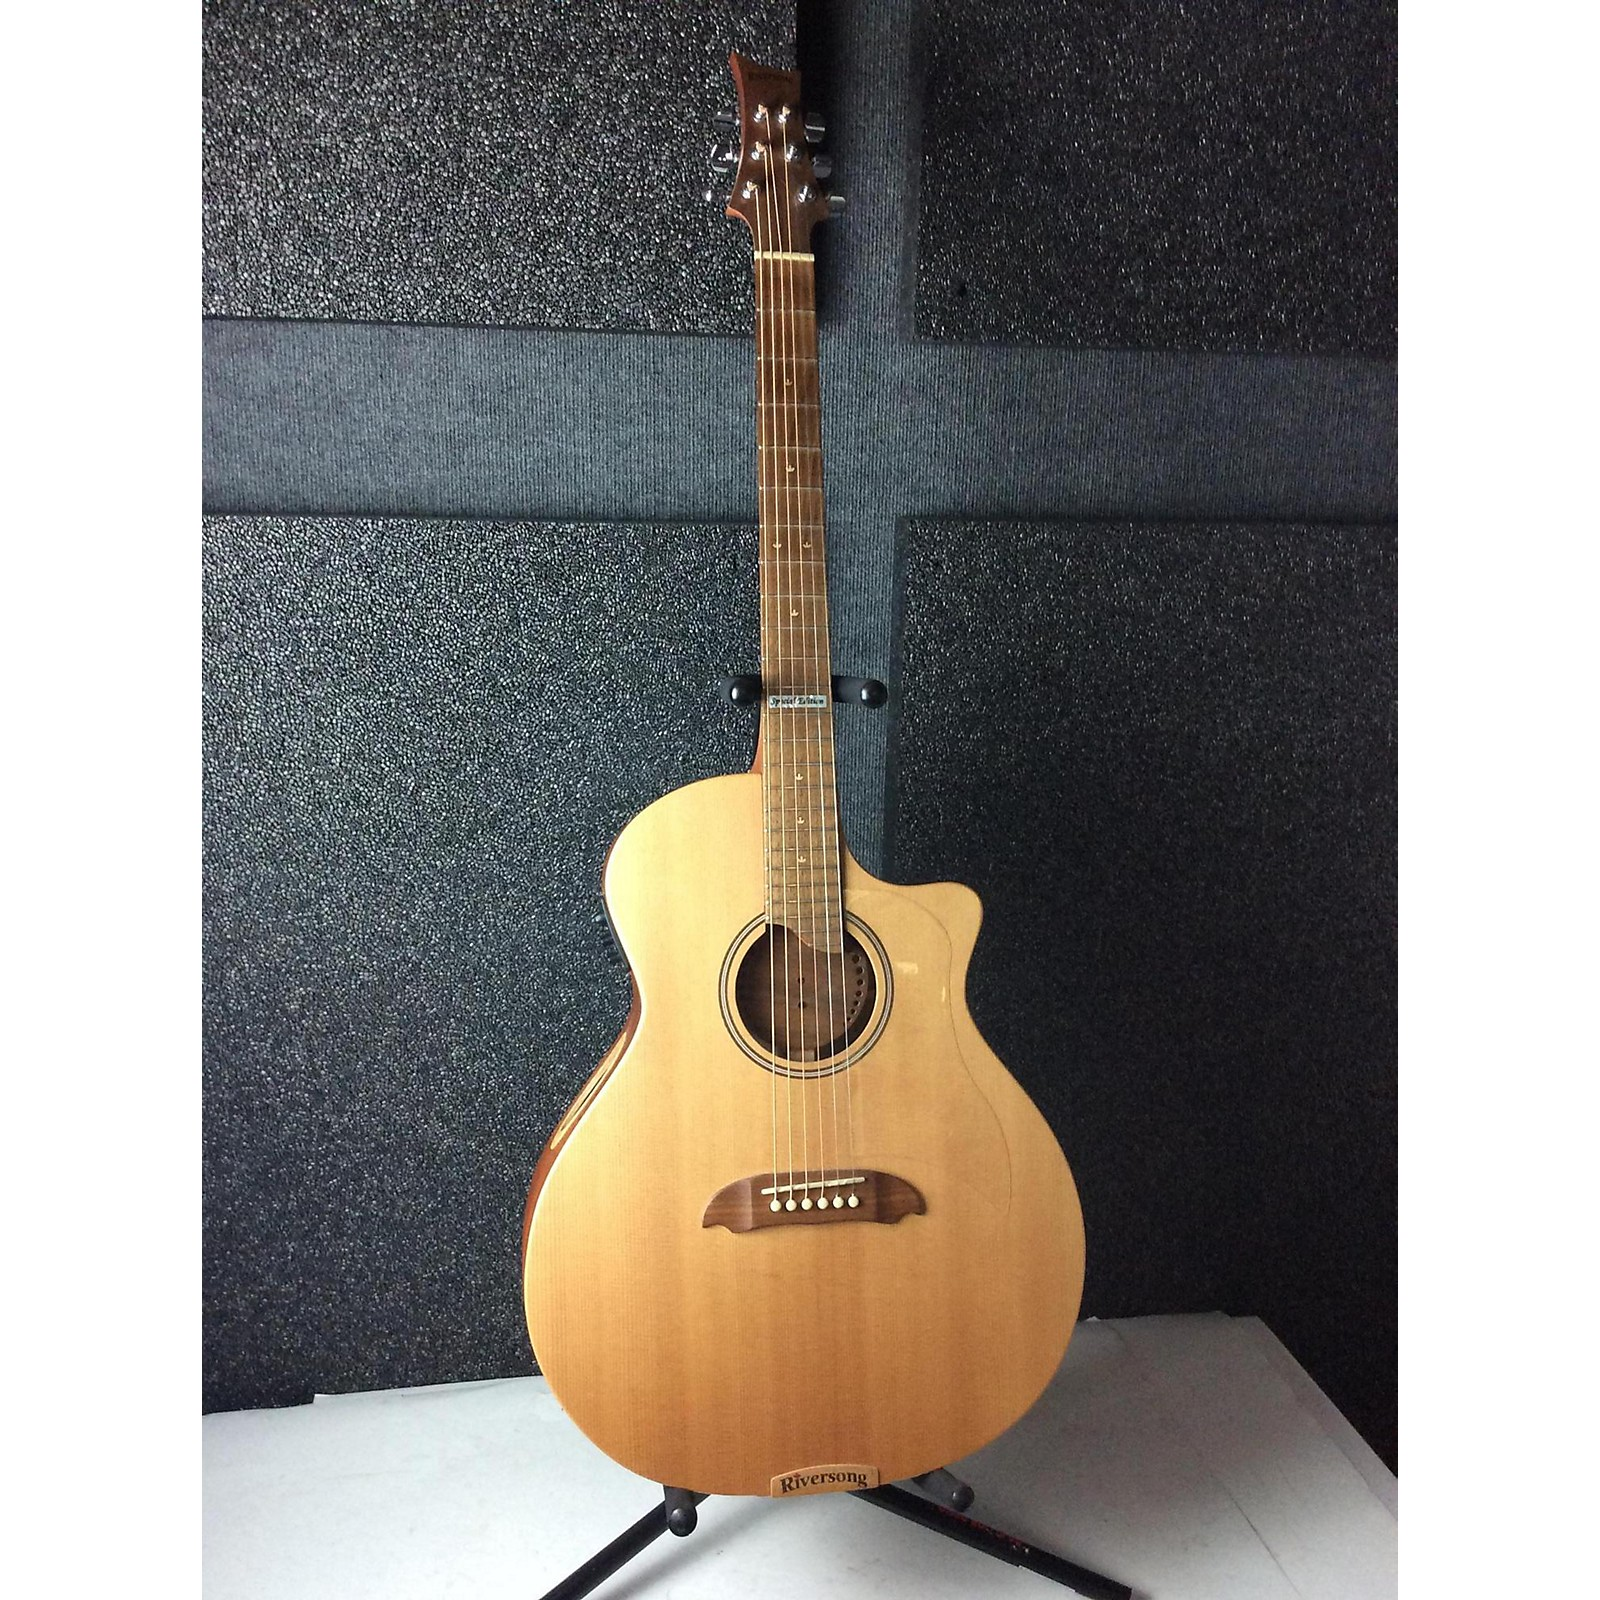 Riversong Guitars Tradition Canadian Series Special Edition Acoustic Electric Guitar